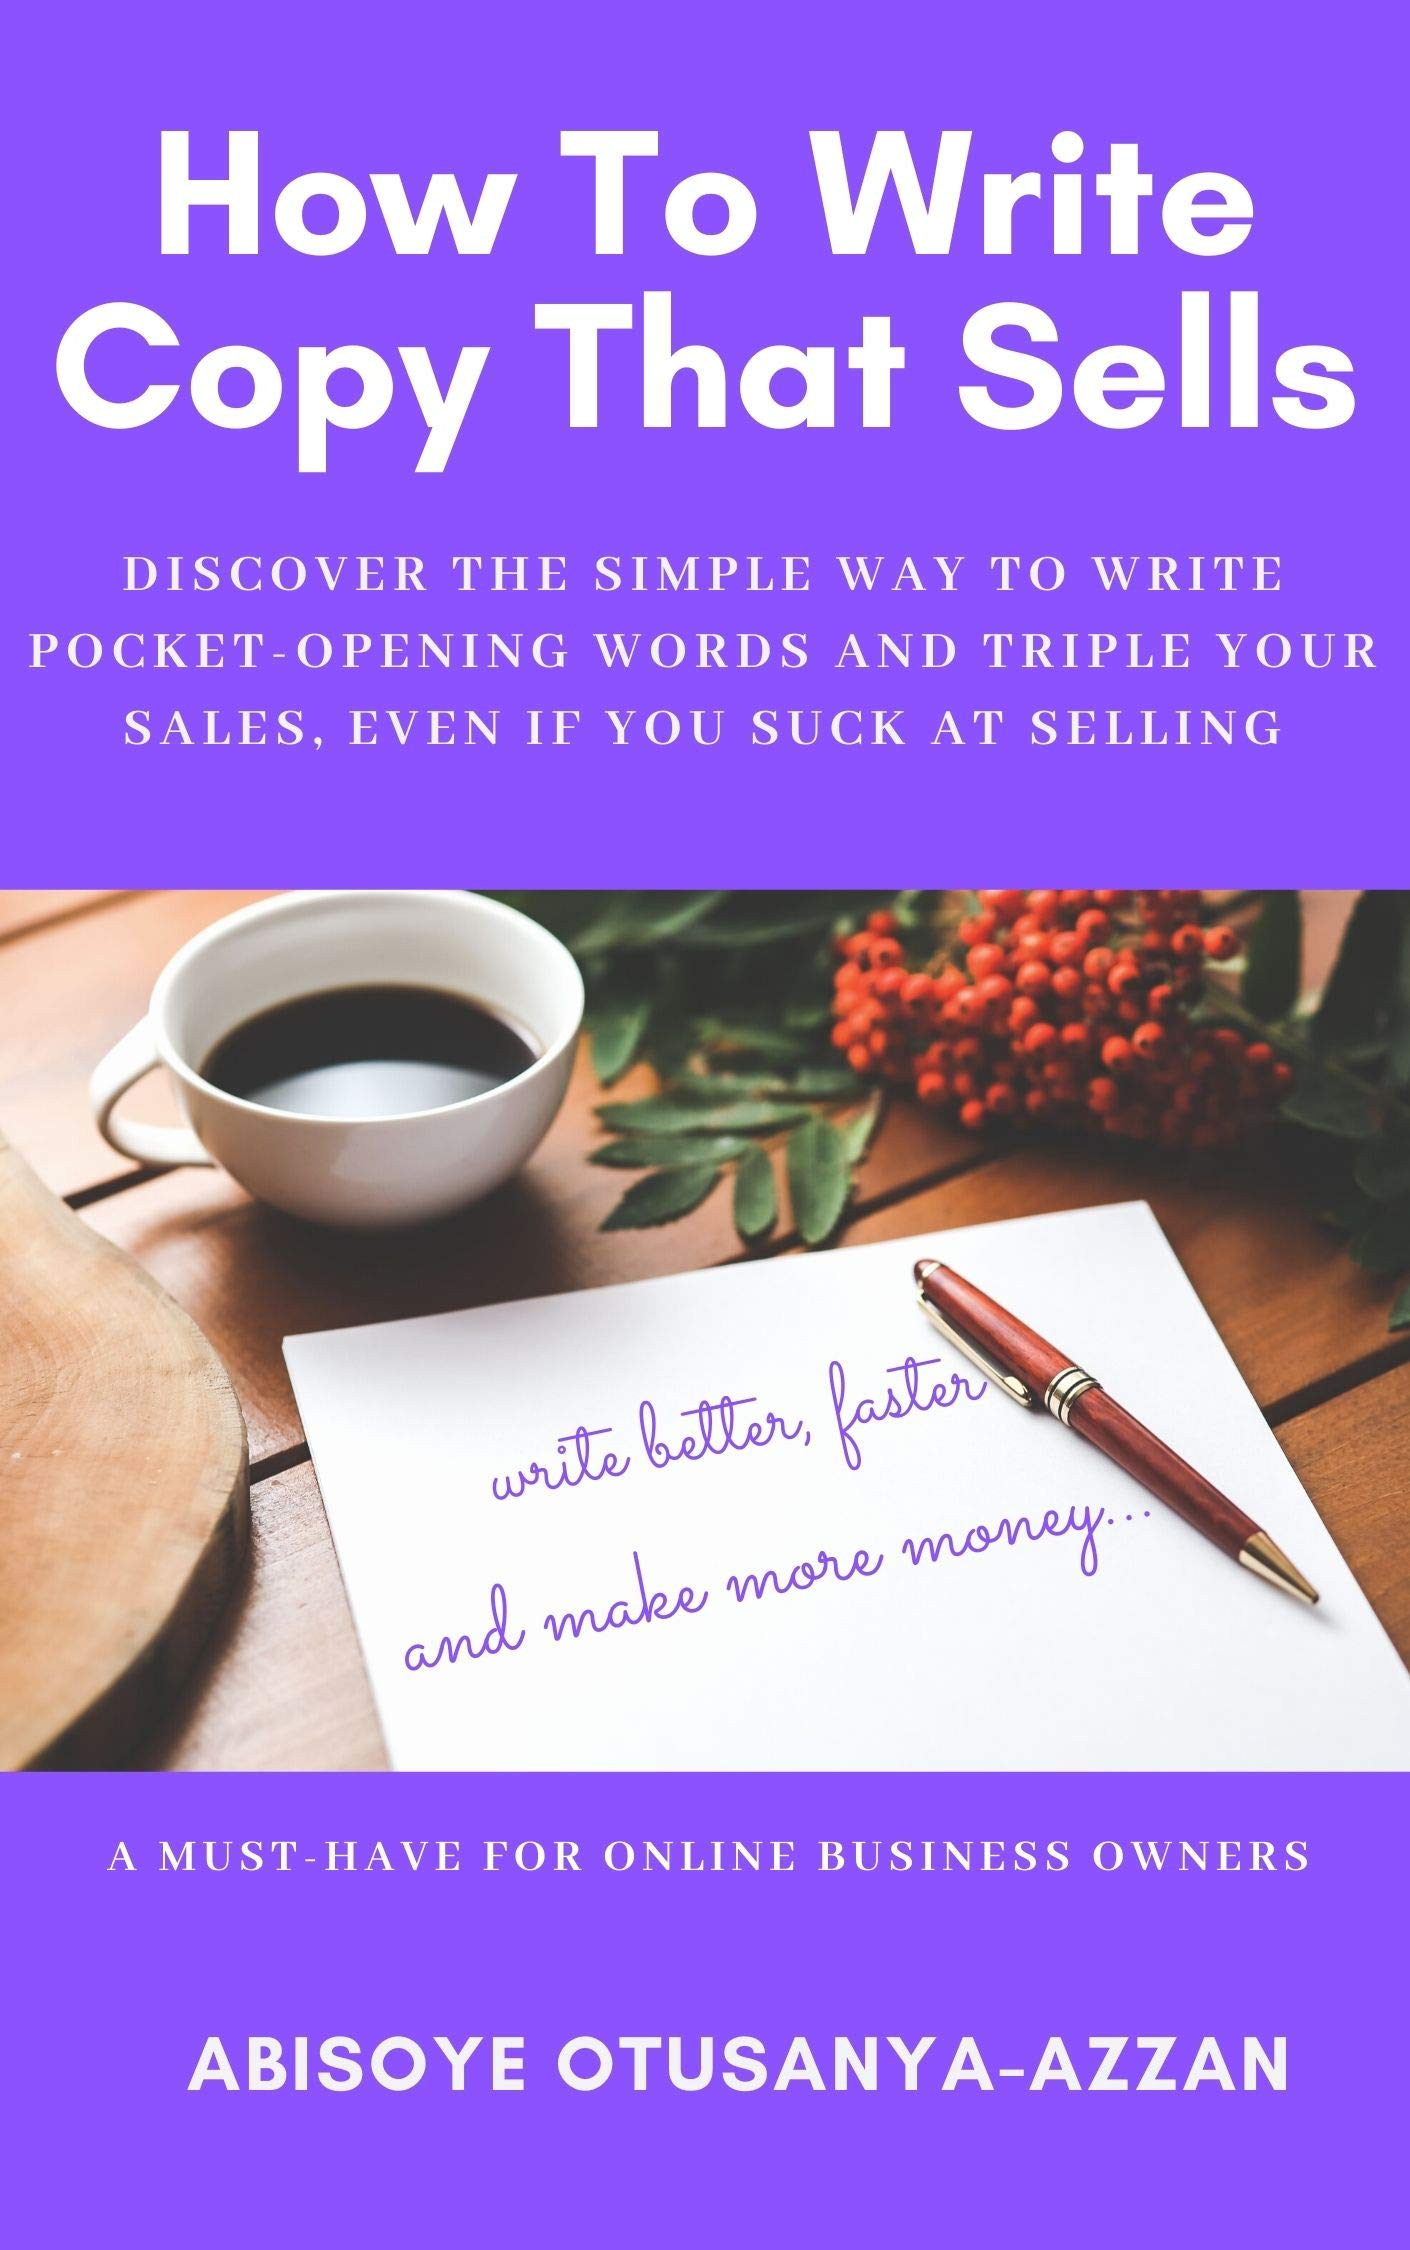 How to write copy that sells: Discover the simple way to write pocket-opening words and triple your sales, even if you suck at selling